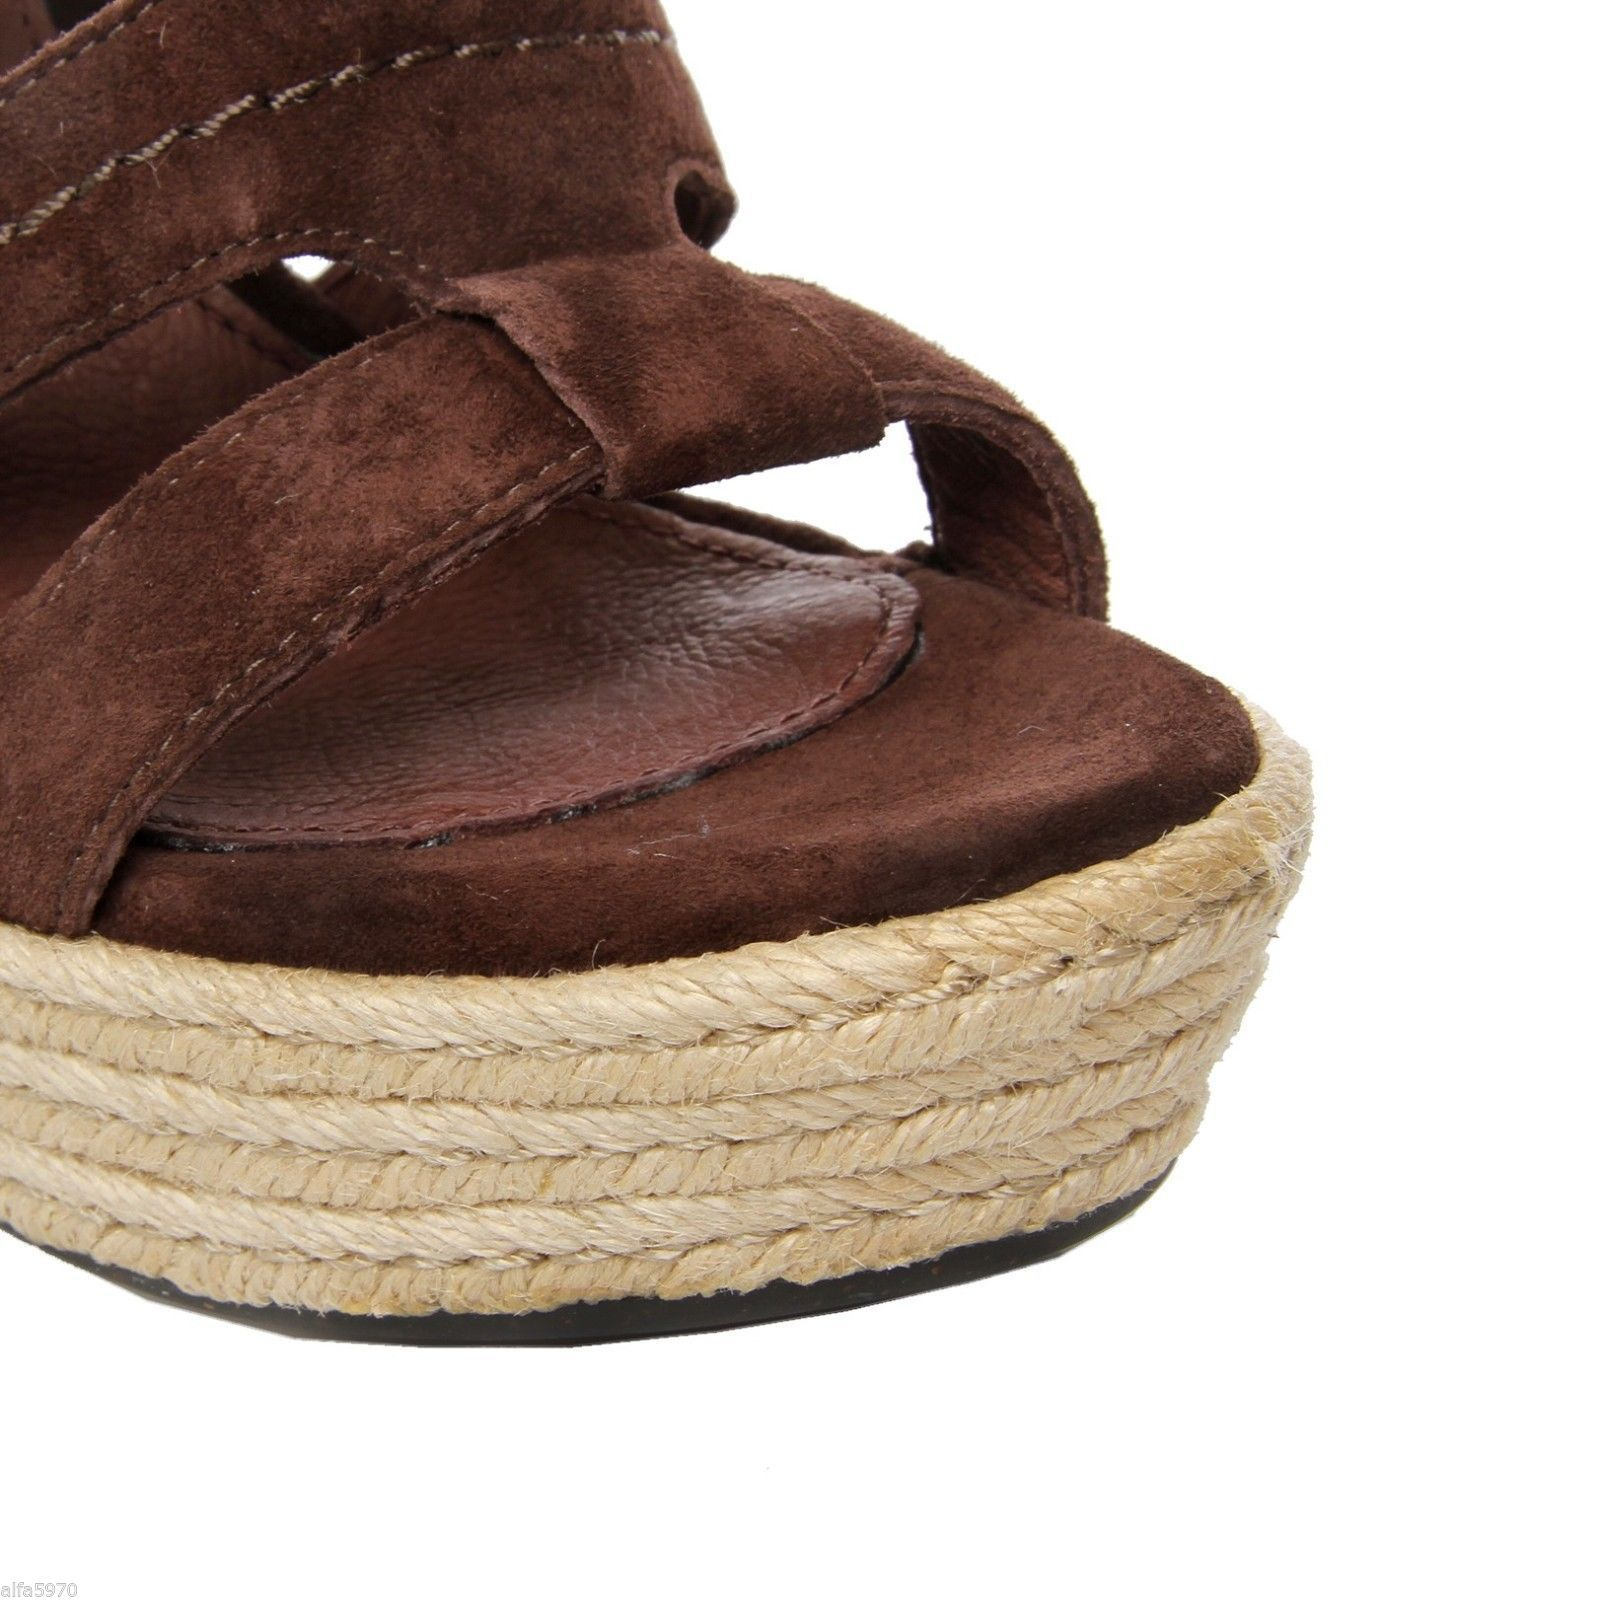 UGG AUSTRALIA TAWNIE SANDALS, WEDGES SHOES- SIZE US 11- NEW